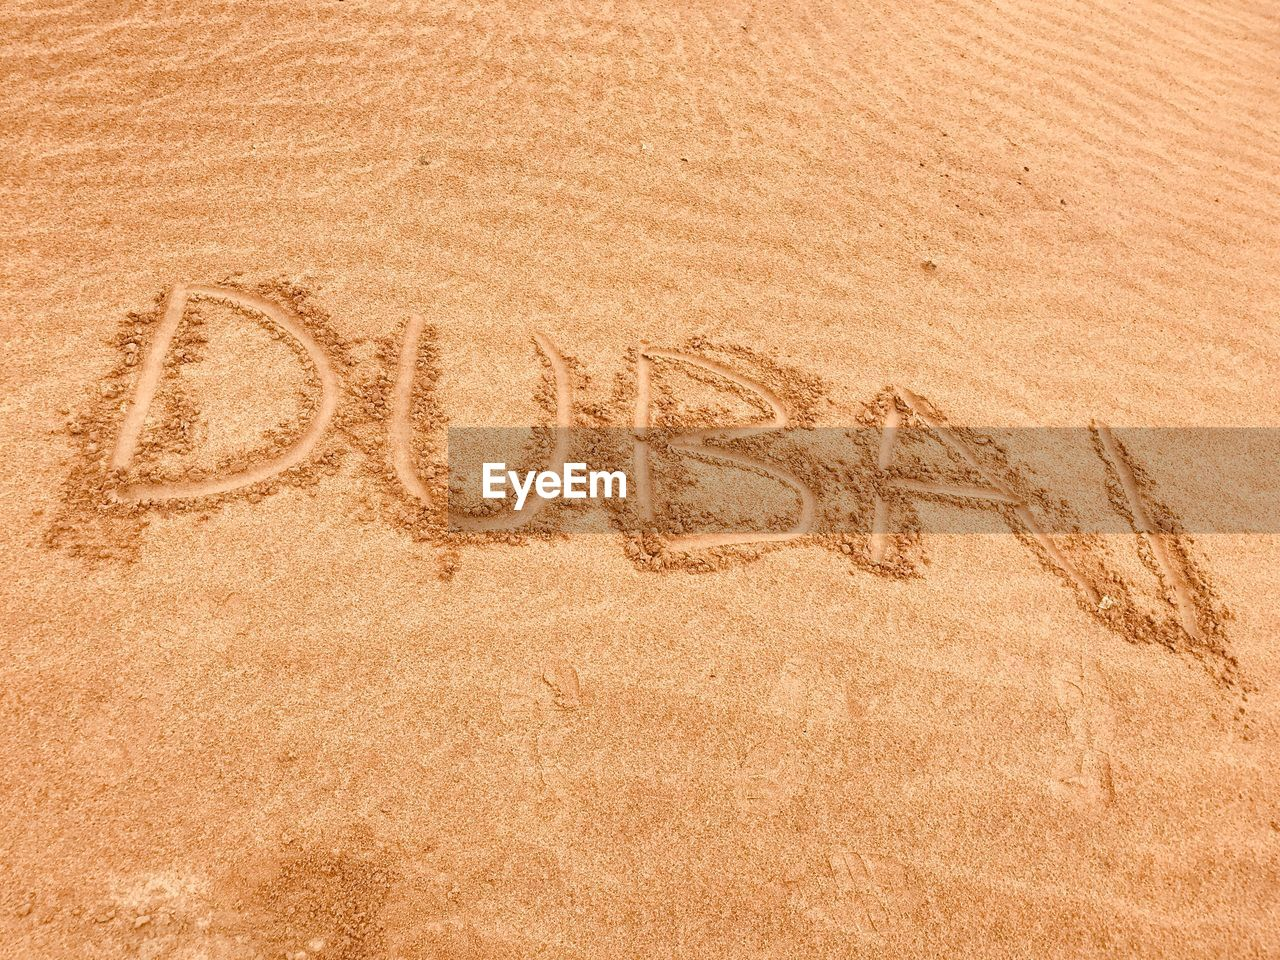 land, sand, backgrounds, beach, no people, nature, text, holiday, textured, pattern, creativity, full frame, communication, religion, outdoors, day, copy space, close-up, summer, message, textured effect